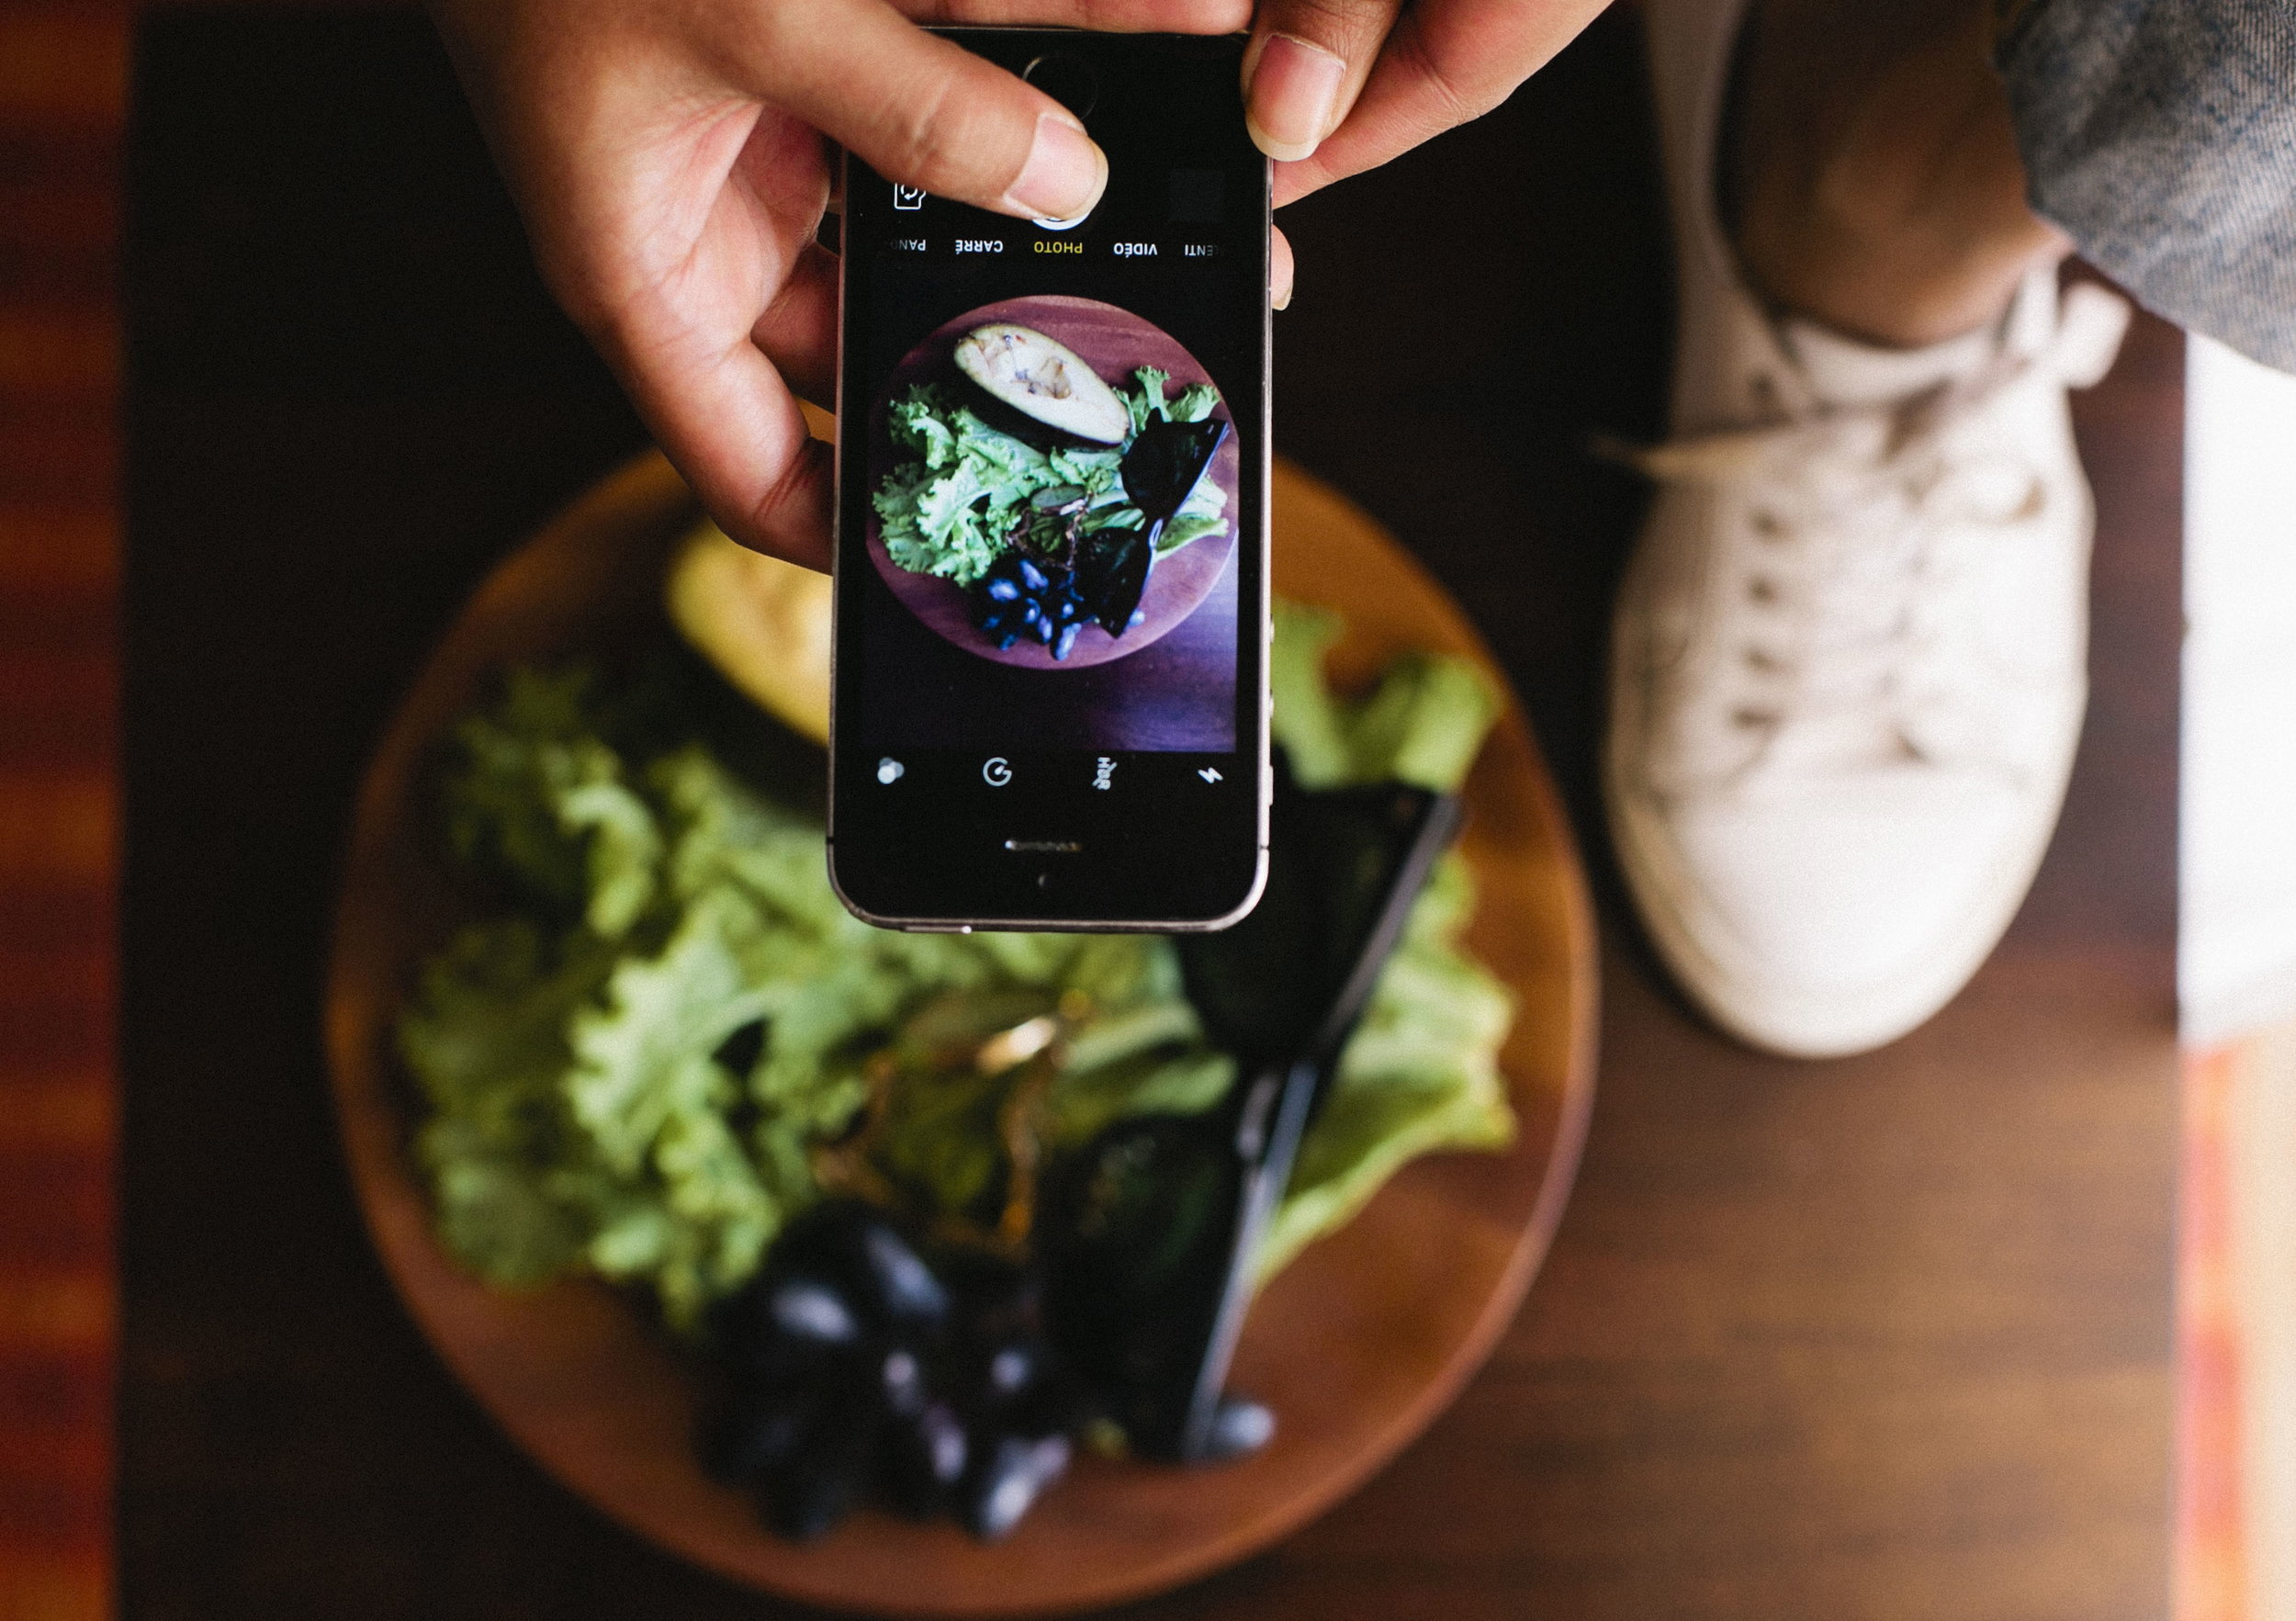 Instagram for food & fashion | The parallel worlds of food & fashion